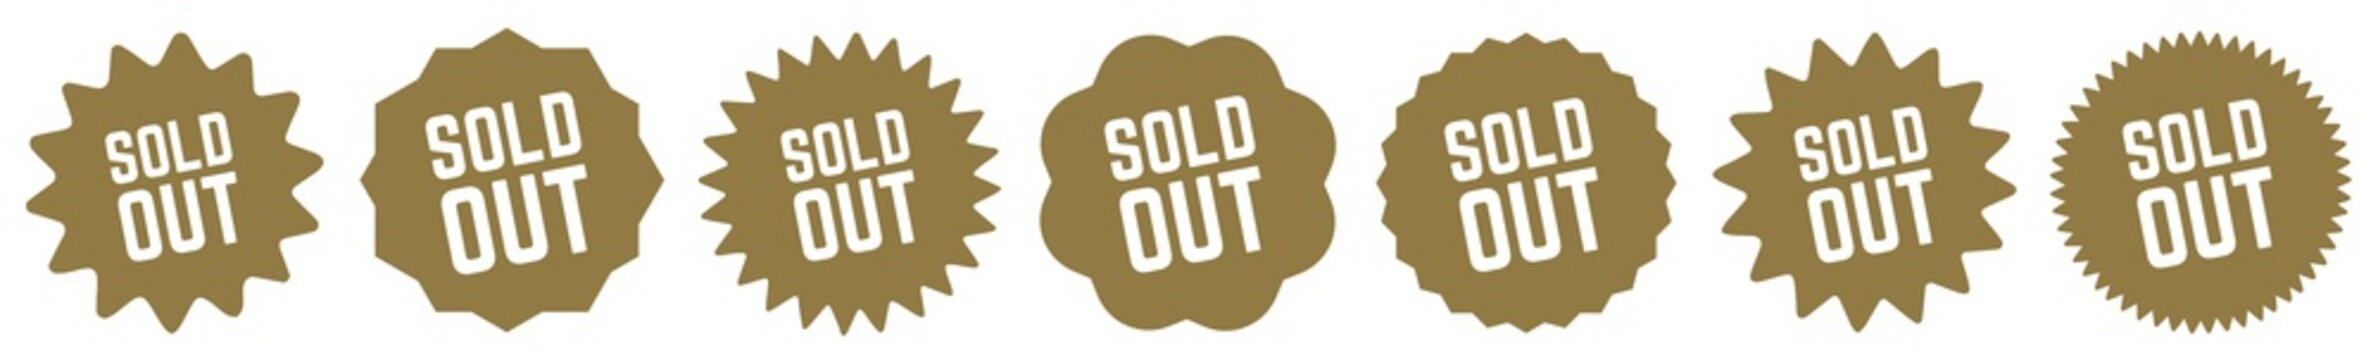 Sold Out Tag Gold | Icon | Sticker | Deal Label | Variations